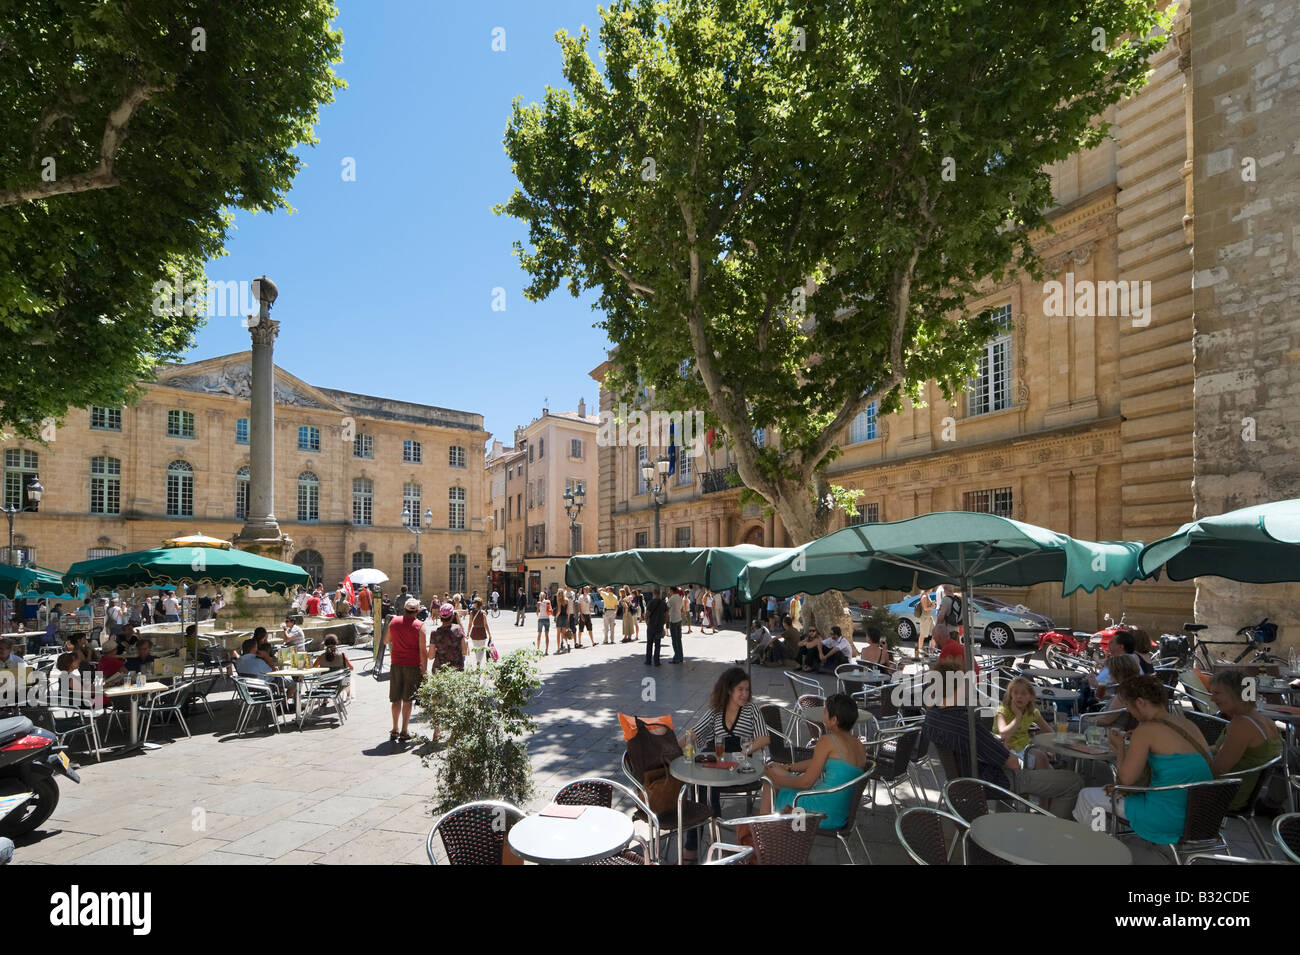 Street cafe in the Place de l'Hotel de Ville with the Town Hall behind, Aix en Provence, France - Stock Image